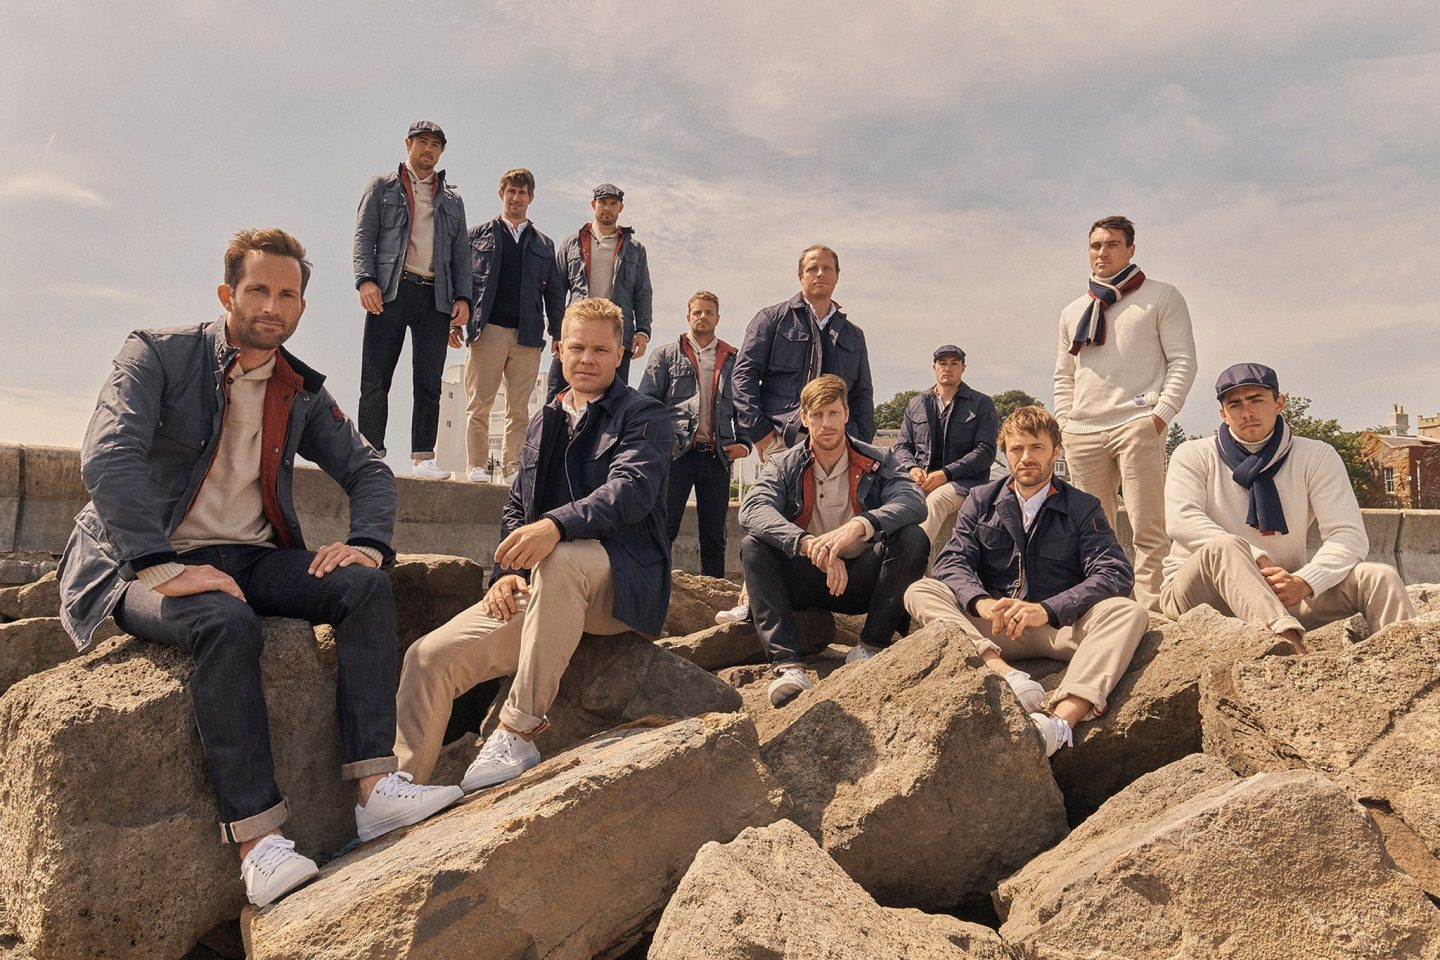 Maketh_the_man-America_Cup_inspired_capsule_collection-Belstaff_Ineos_collection